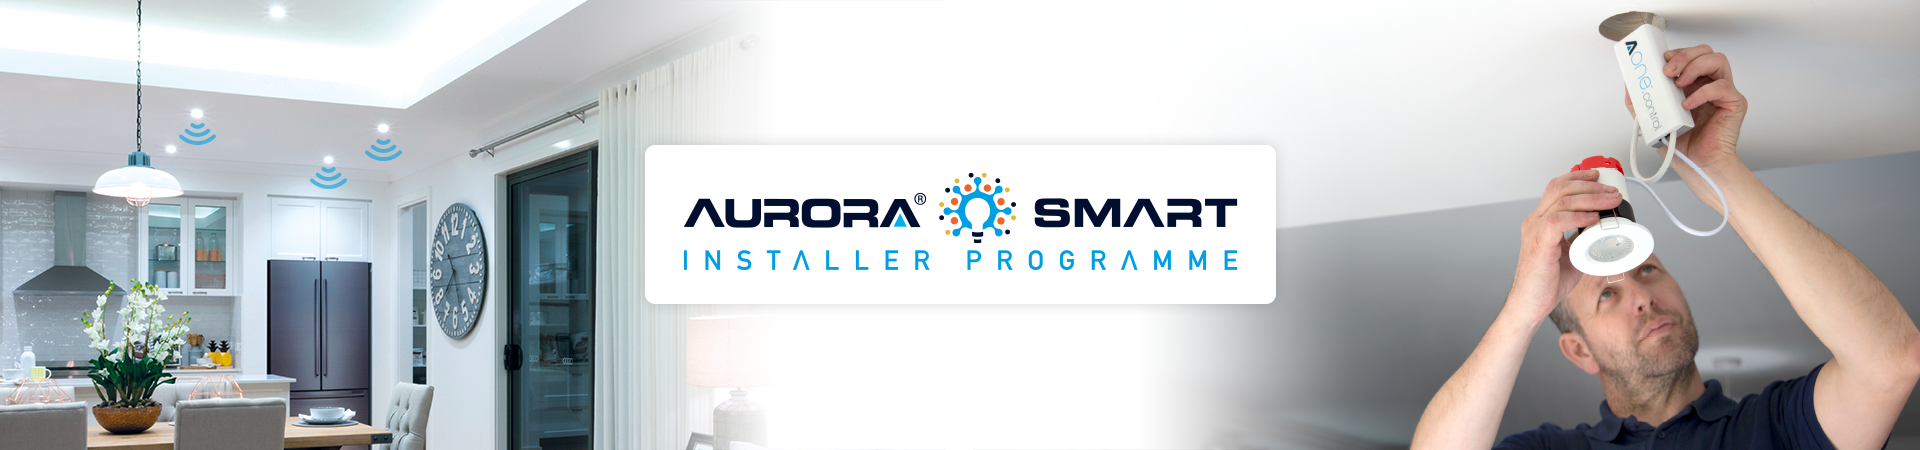 Show products in category AOne™ Smart Installer Programme